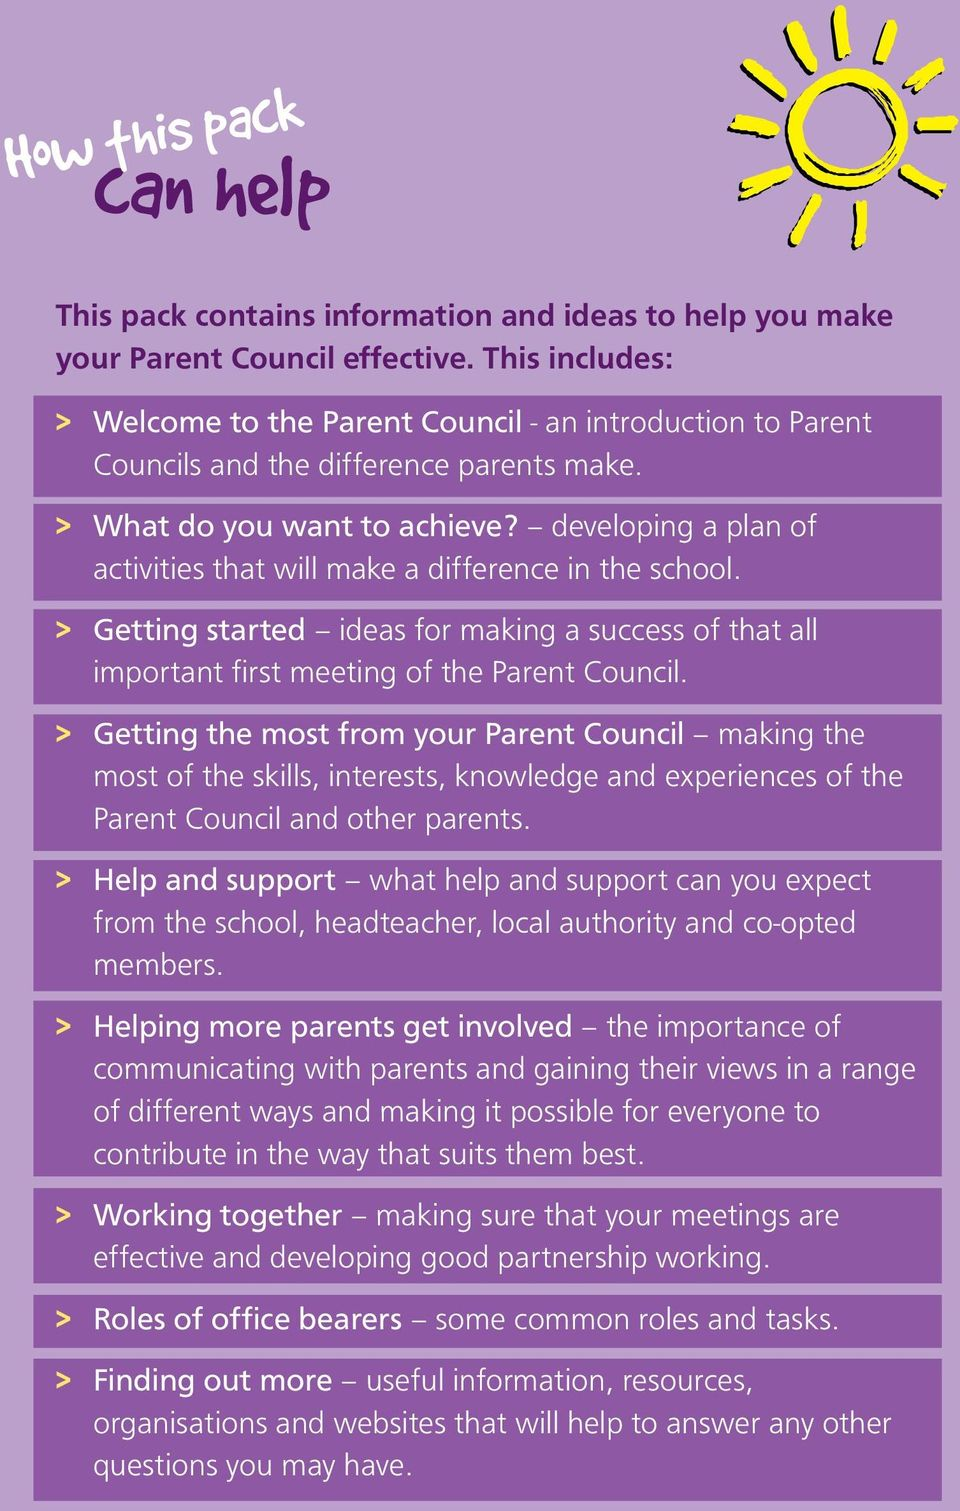 developing a plan of activities that will make a difference in the school. > Getting started ideas for making a success of that all important first meeting of the Parent Council.